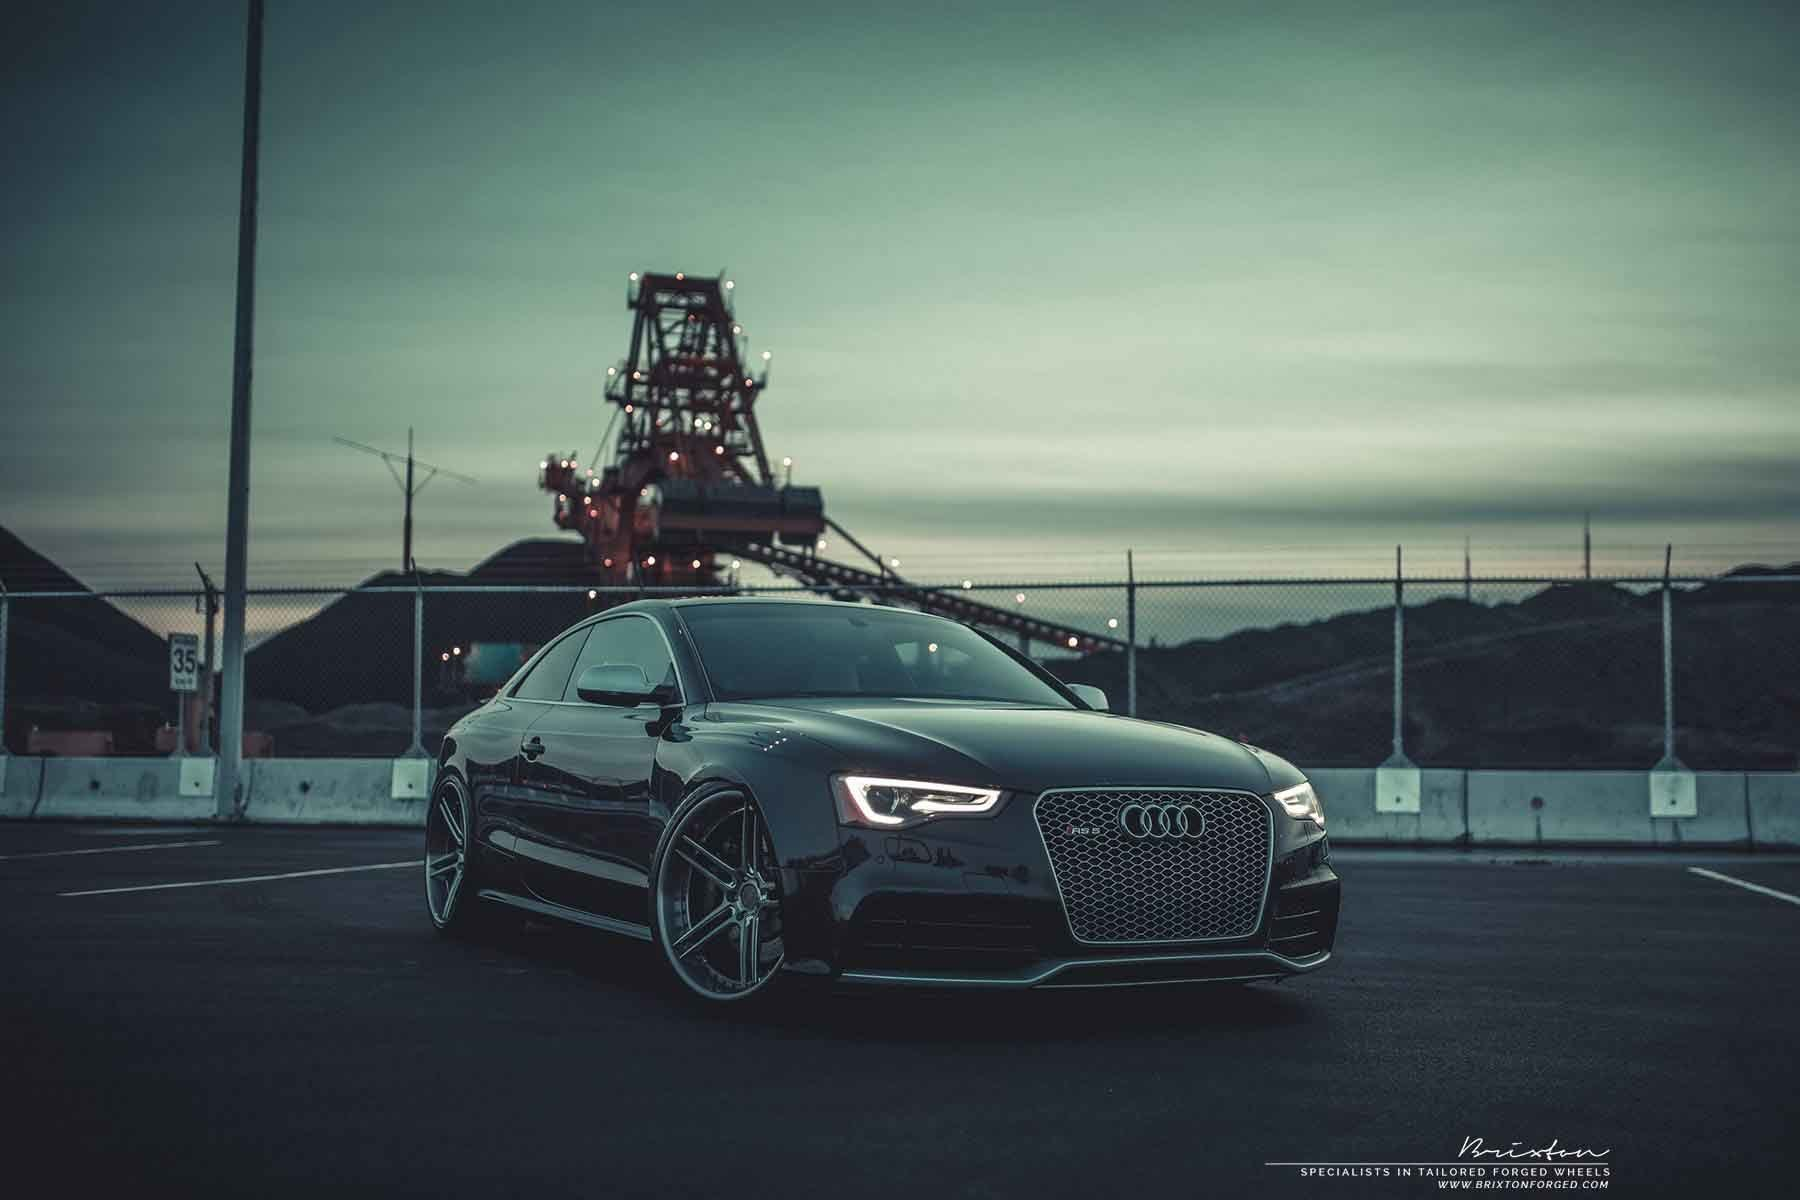 images-products-1-2202-232974490-brixton-forged-black-audi-rs5-brixton-m52-monaco-series-21-inch-3-piece-forged-wheels-brushed-po.jpg